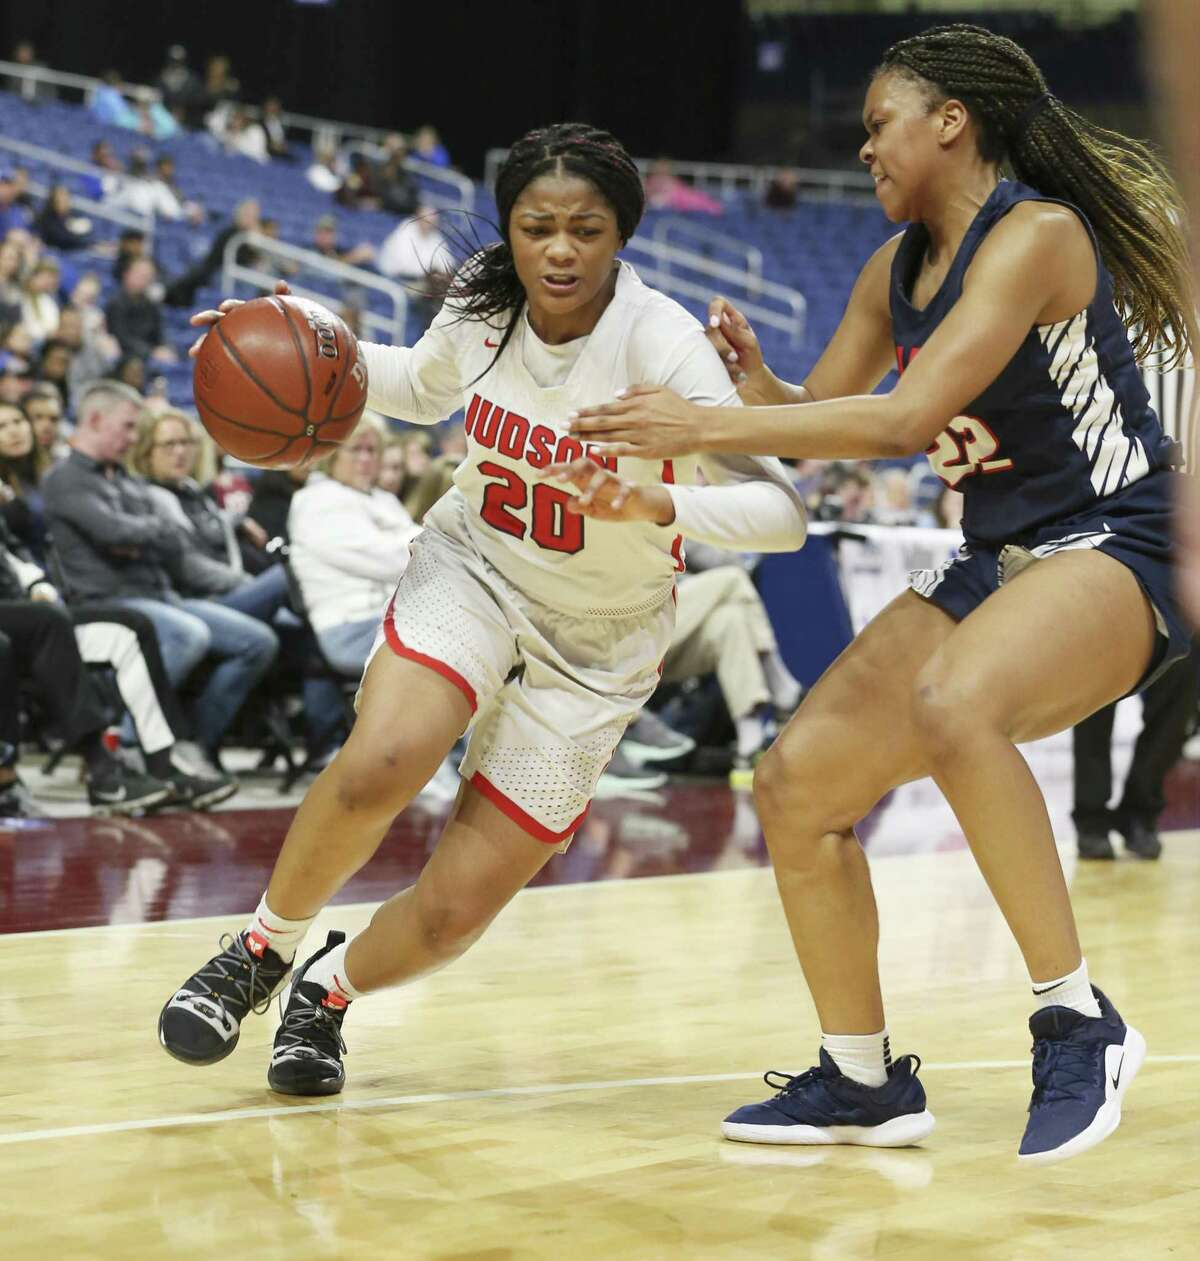 Judson's Kierra Sanderlin (20) drives toward the basket against Allen's Tyler Jackson (22) in the second half in the UIL Conference 6A girls basketball state semifinal at the Alamodome on Friday, Mar. 1, 2019. The Rockets advance to the state final defeating the Eagles, 58-47. Sanderlin was the game's high scorer with 26 points. (Kin Man Hui/San Antonio Express-News)